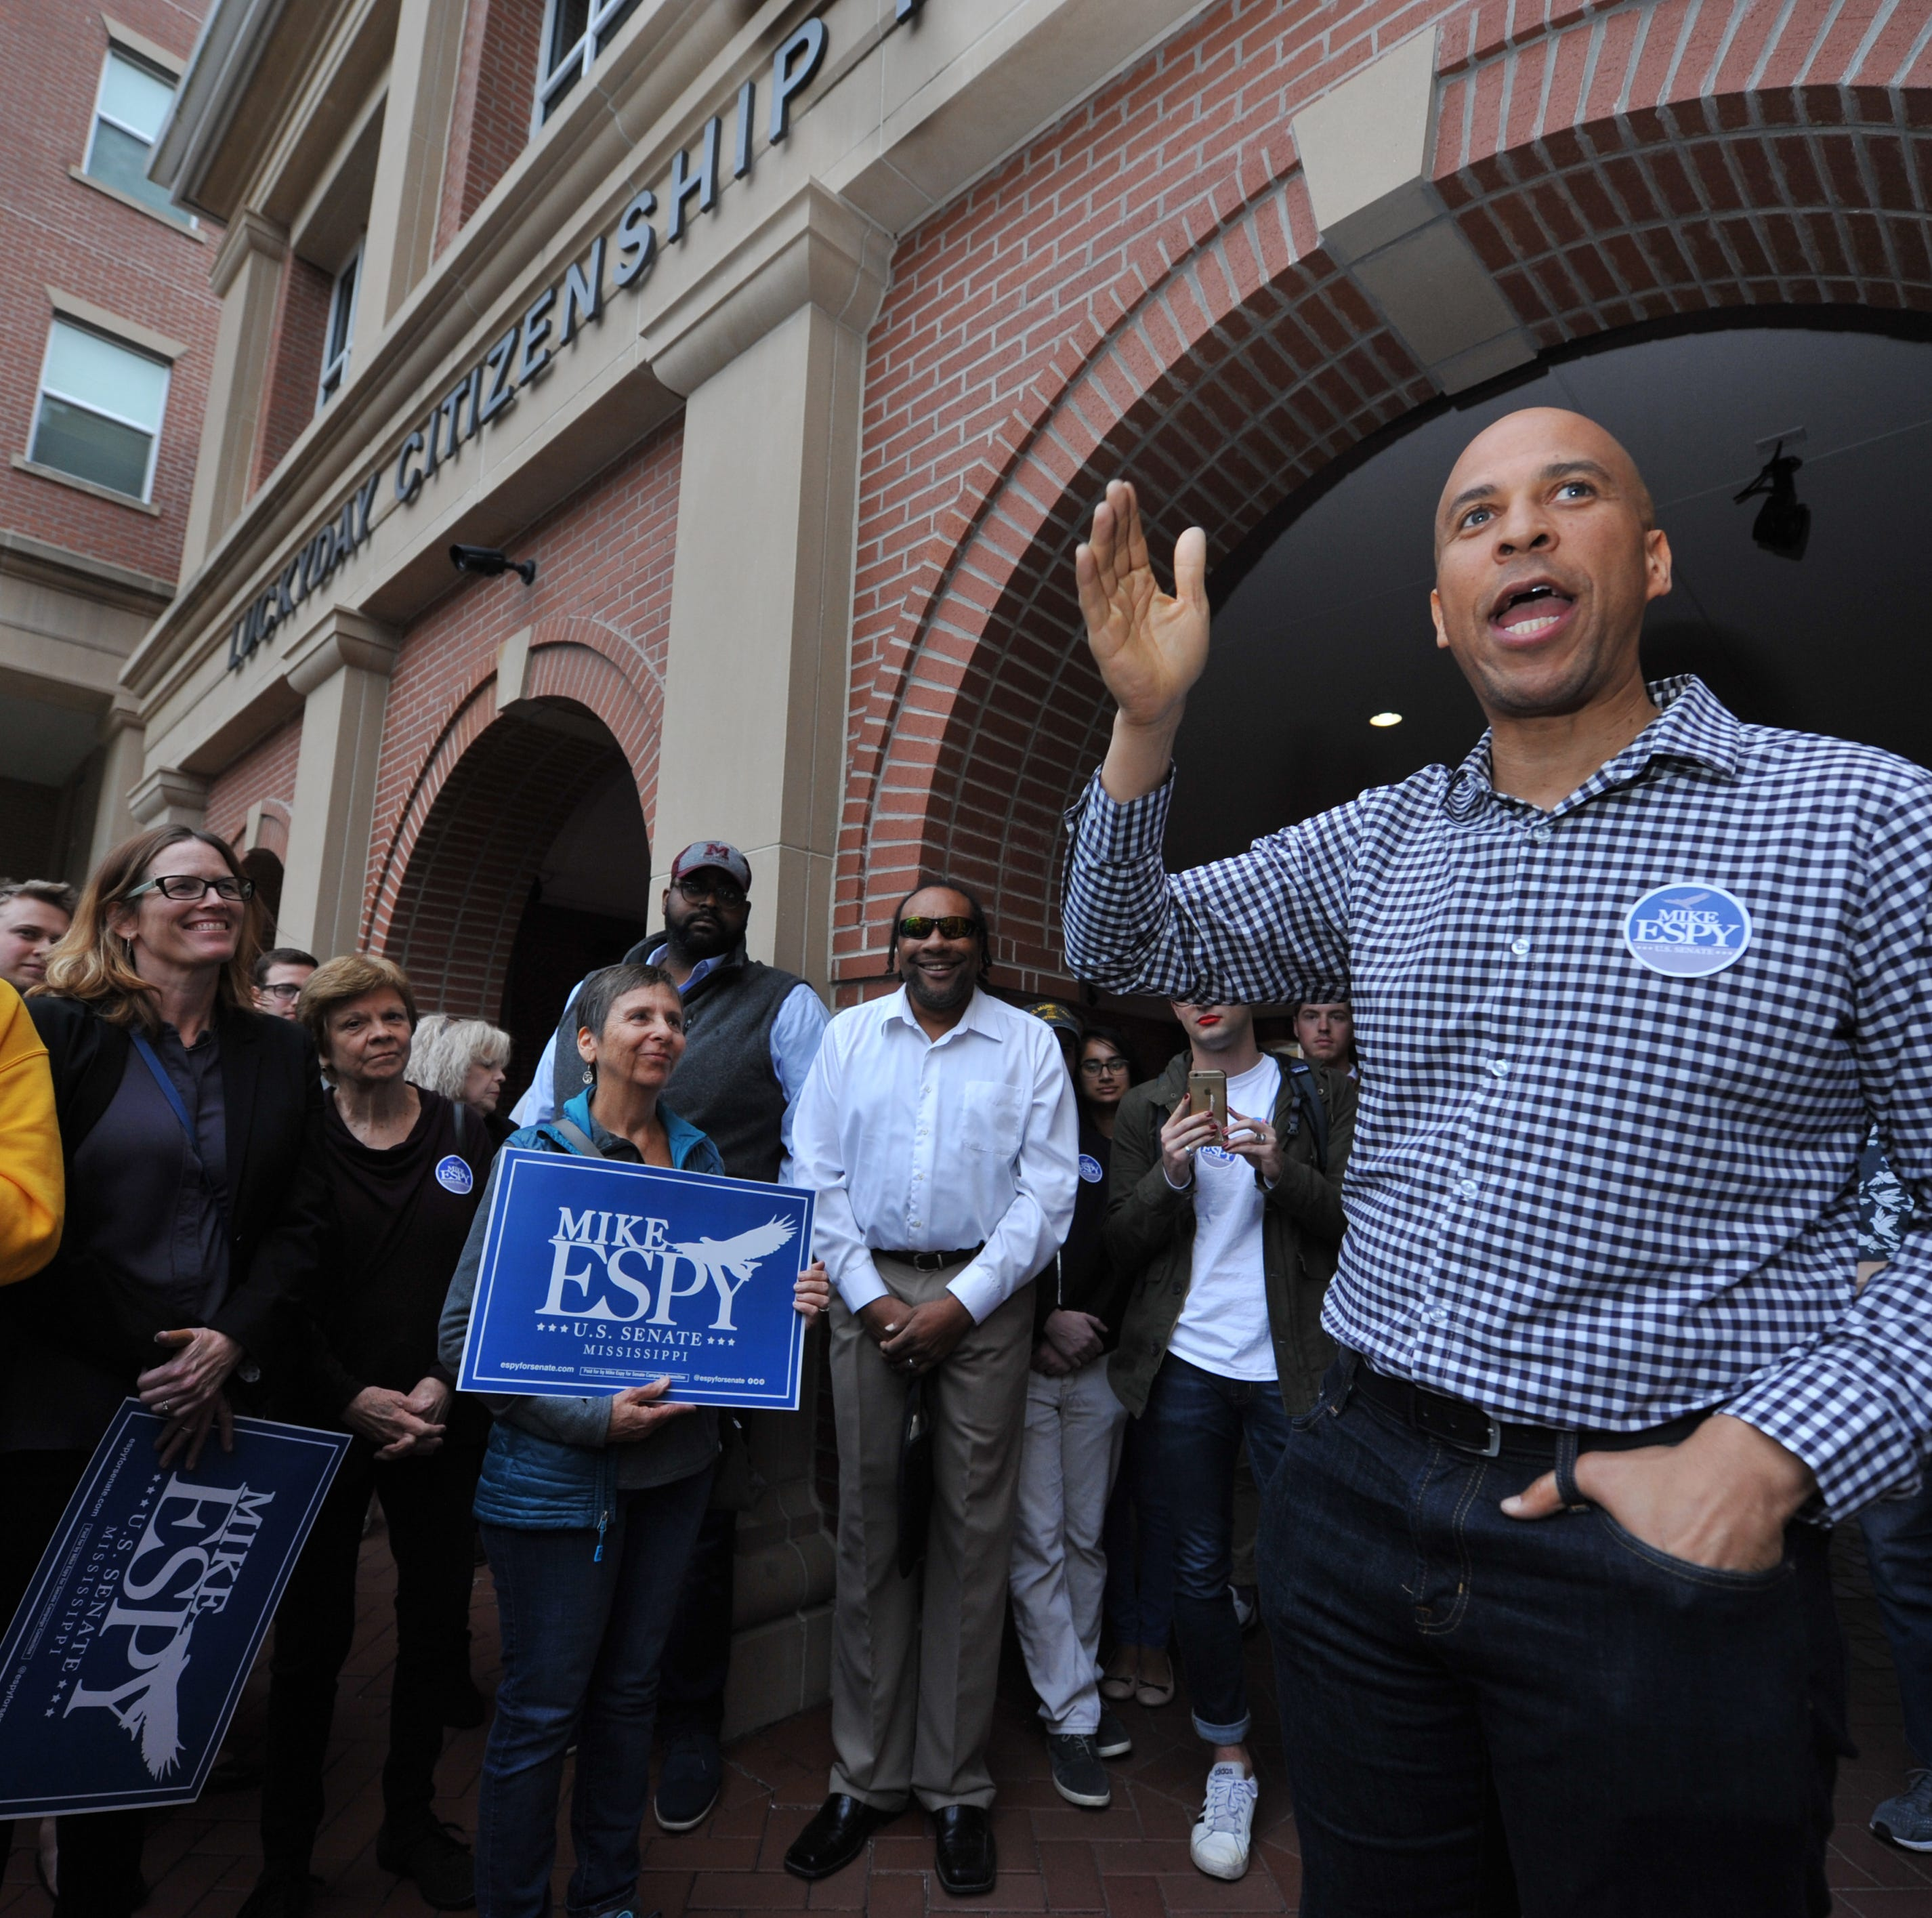 Sen. Cory Booker stumps for Mike Espy in Hattiesburg